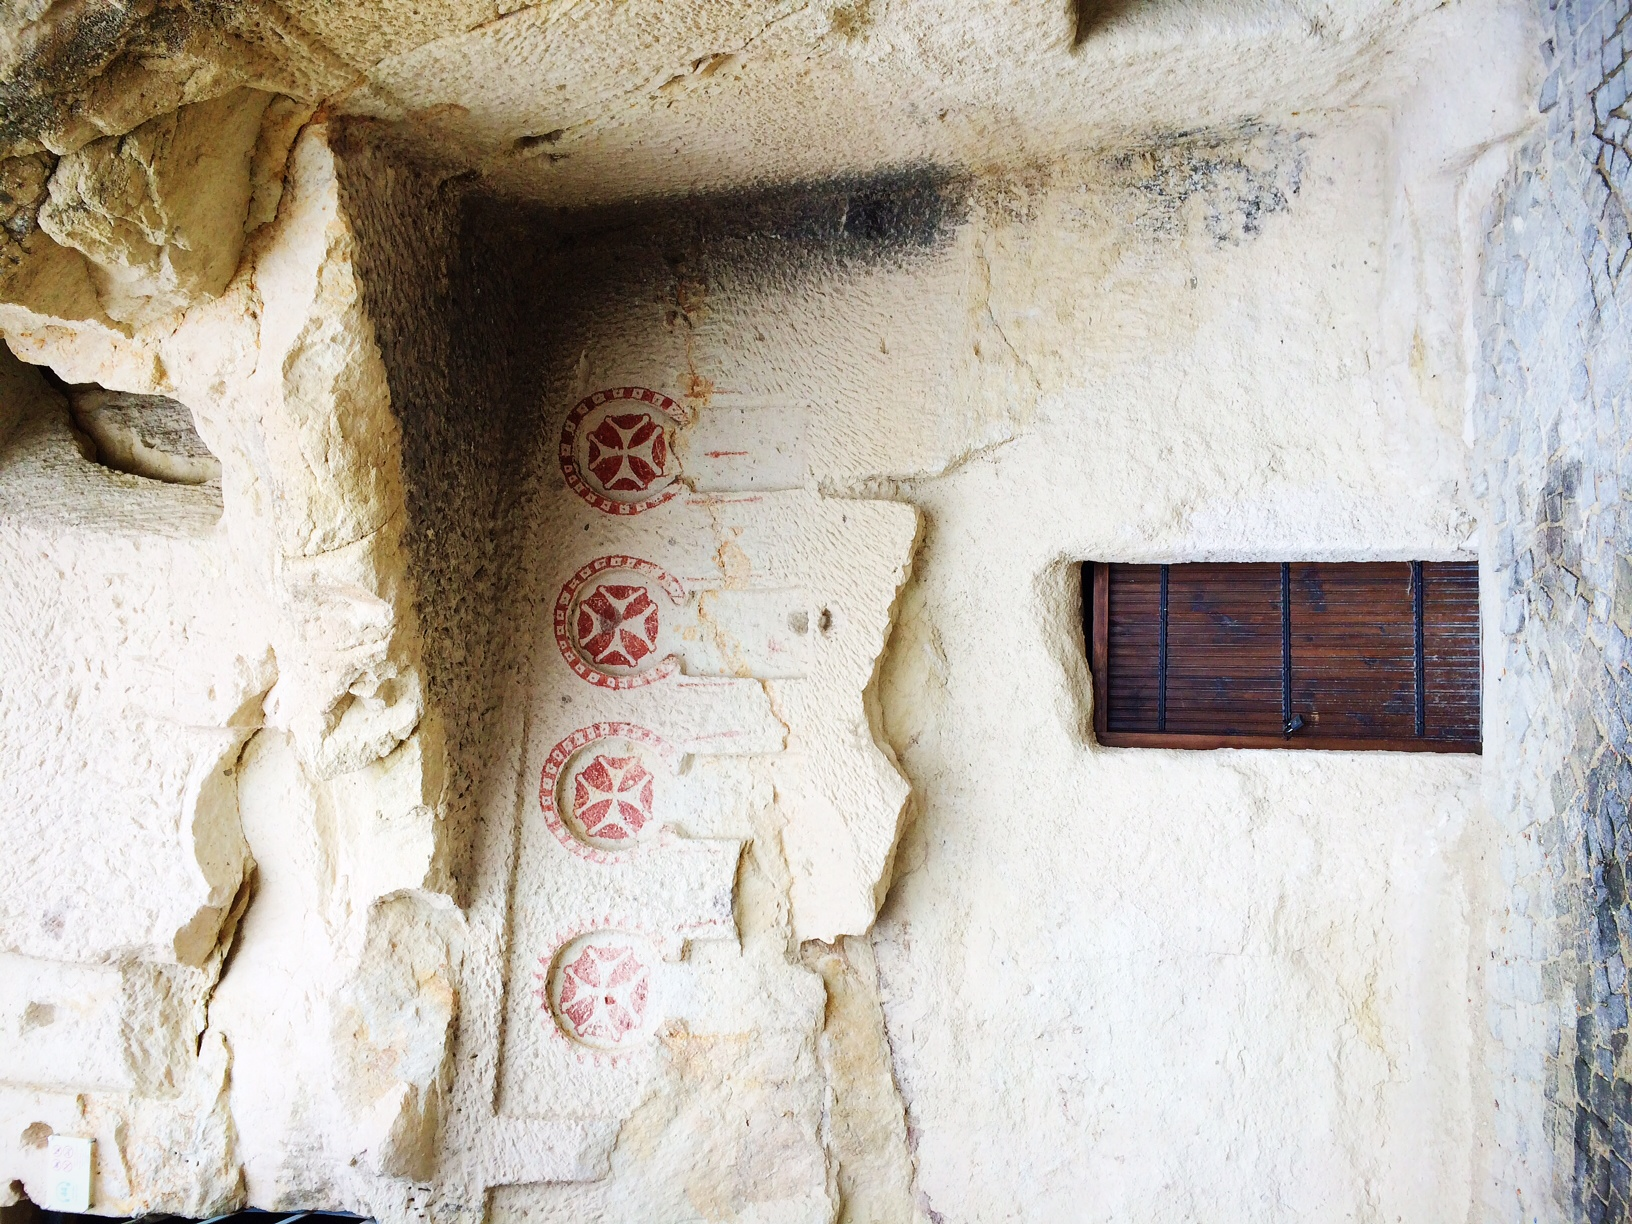 Entrance to one of the seven chapels carved into the rock during the early Cappadocian times. This dates back to as early as 3rd century. Inside Goreme Open Air Museum.